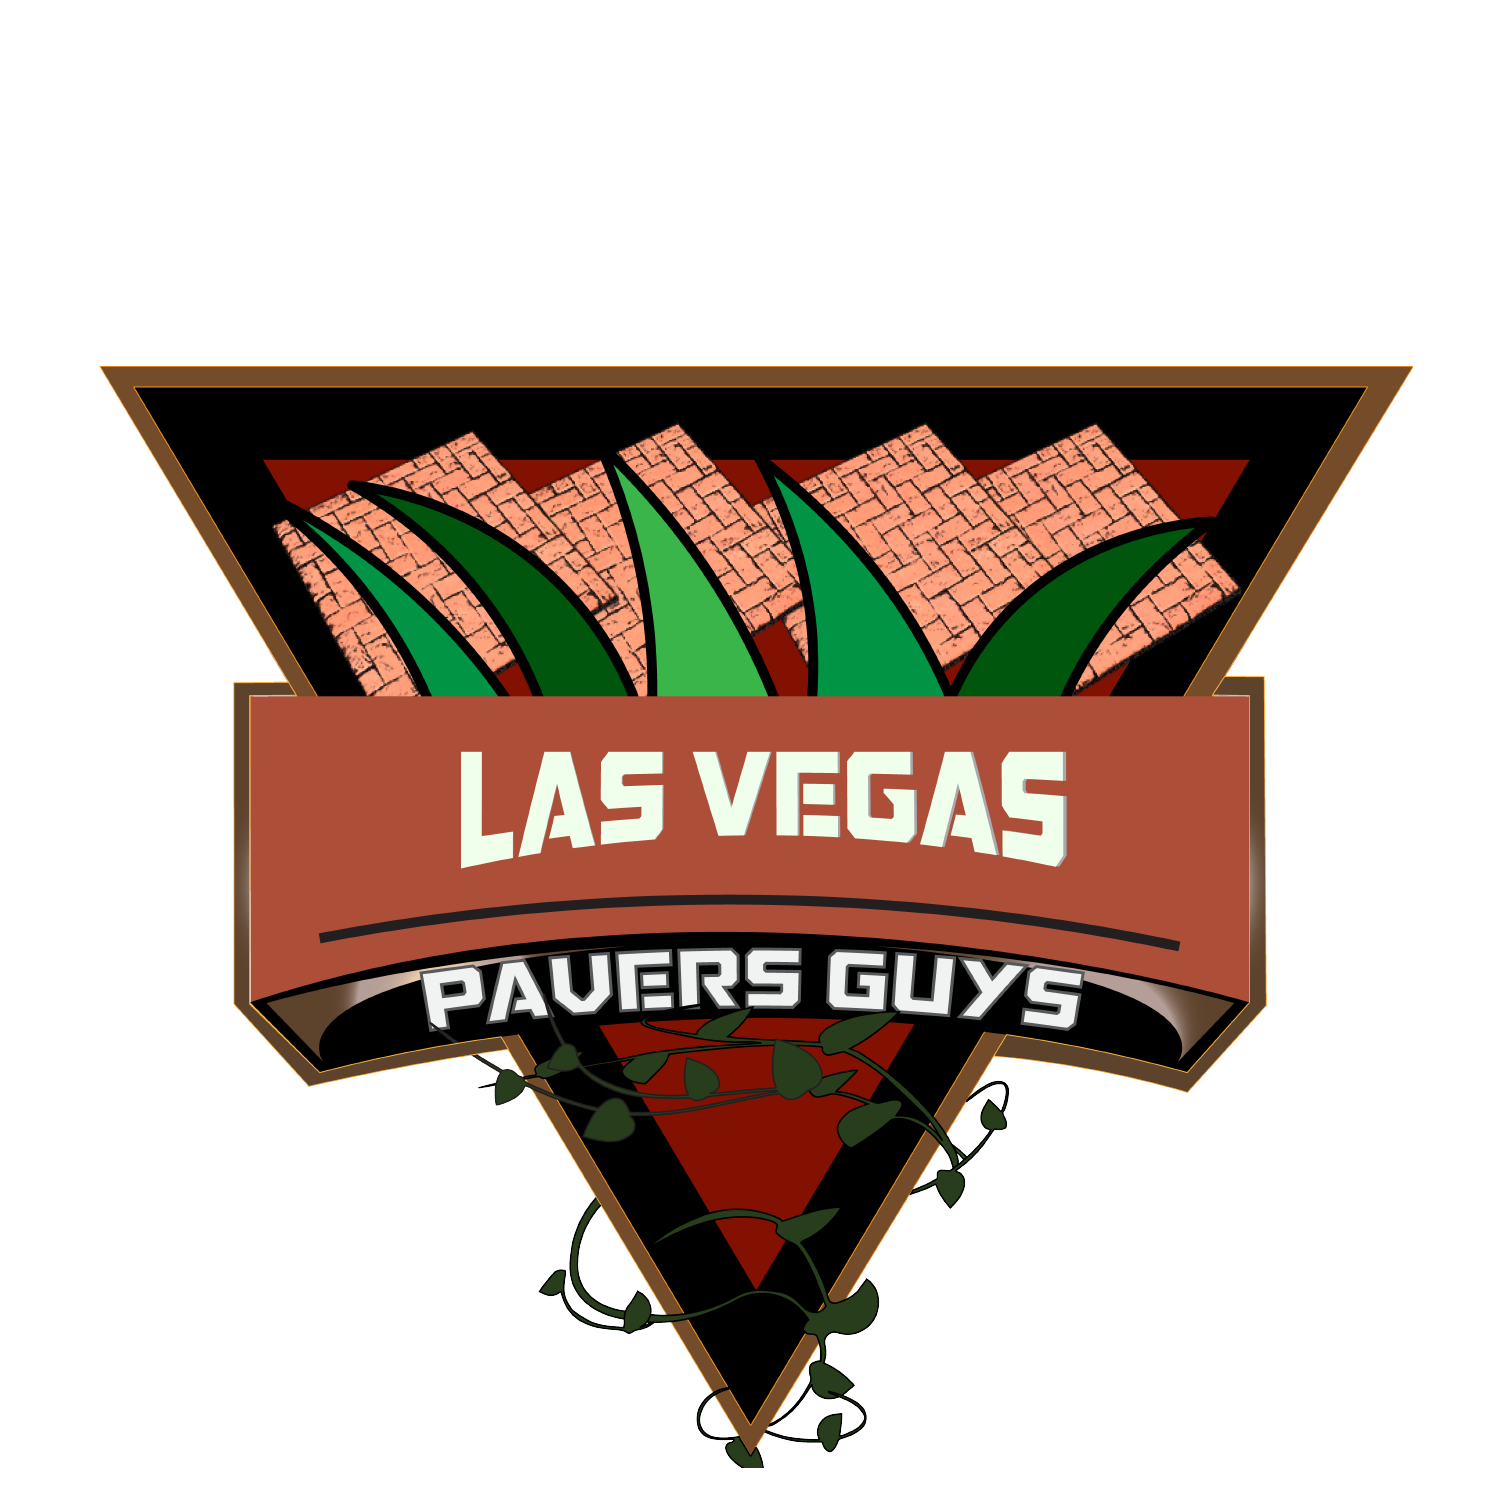 Pavers Guys of Las Vegas Offers Cost Effective Solutions for All Paving Styles in Las Vegas, NV